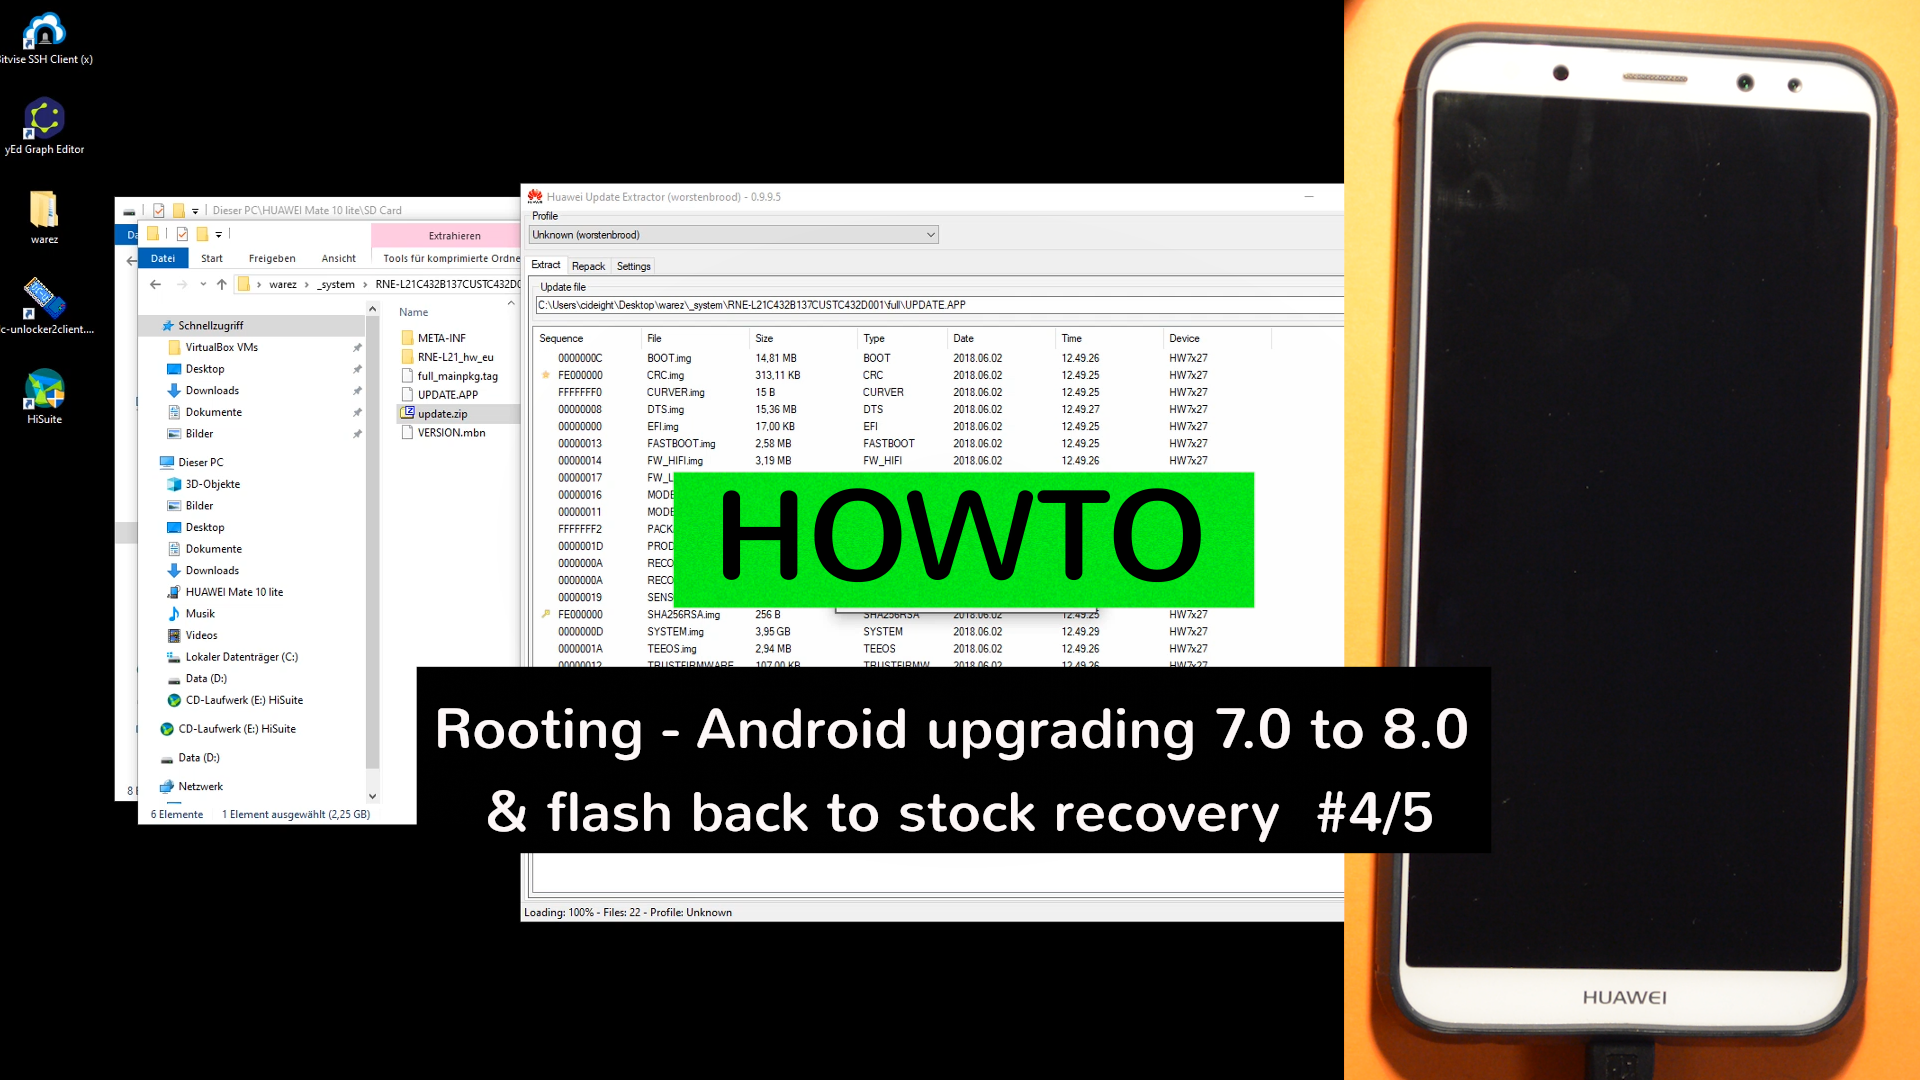 Rooting your device Part #4/5